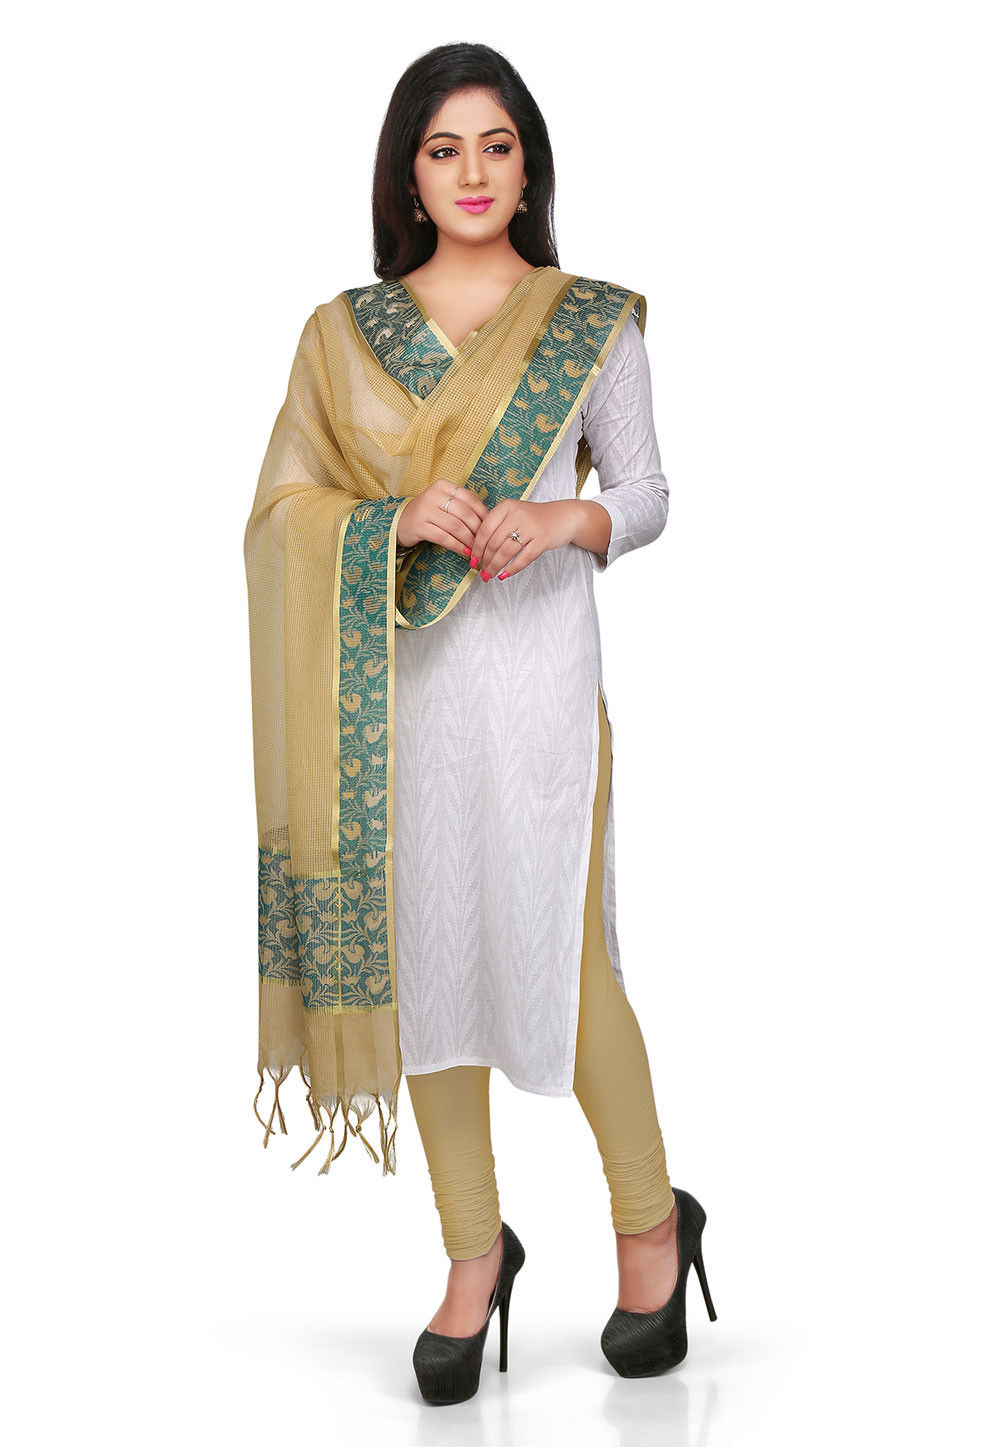 Handloom Kota Art Silk Dupatta in Beige